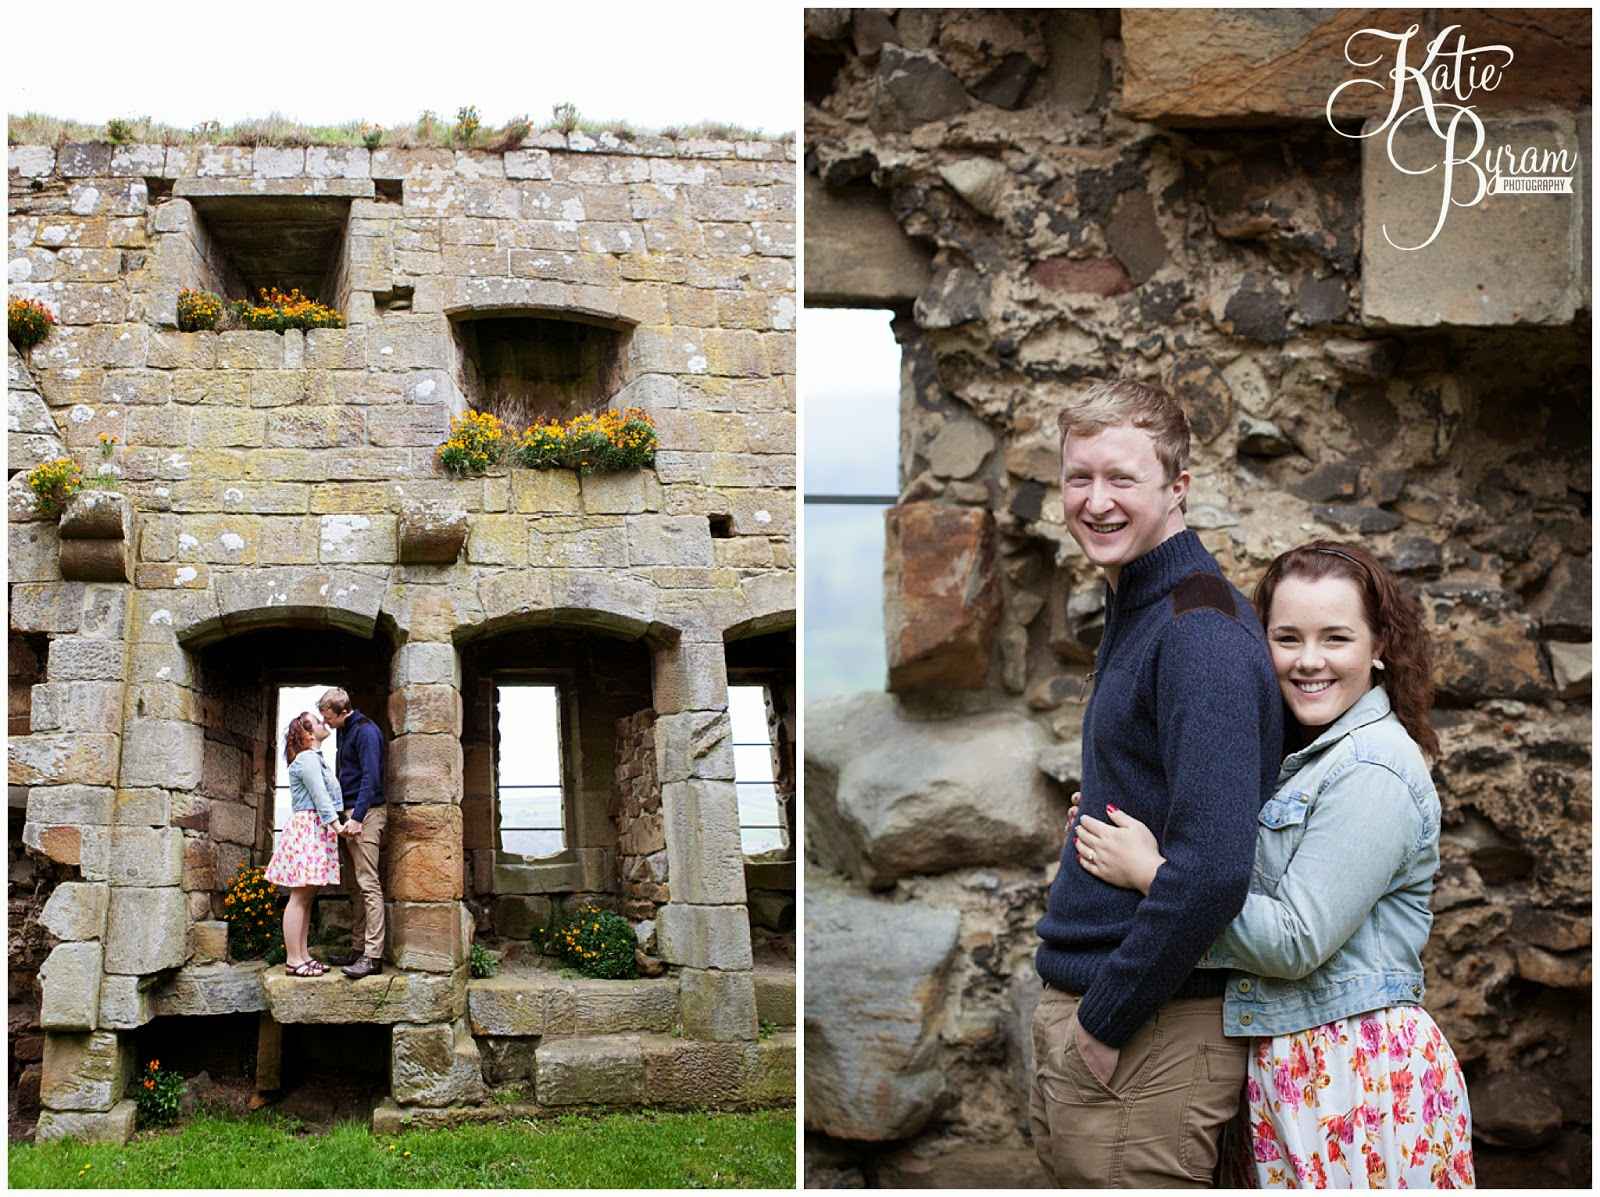 danby castle wedding, danby castle pre-wedding shoot, danby north yorkshire, quirky wedding venue yorkshire, wedding venue yorkshire, katie byram photography, countryside wedding venue, danby castle